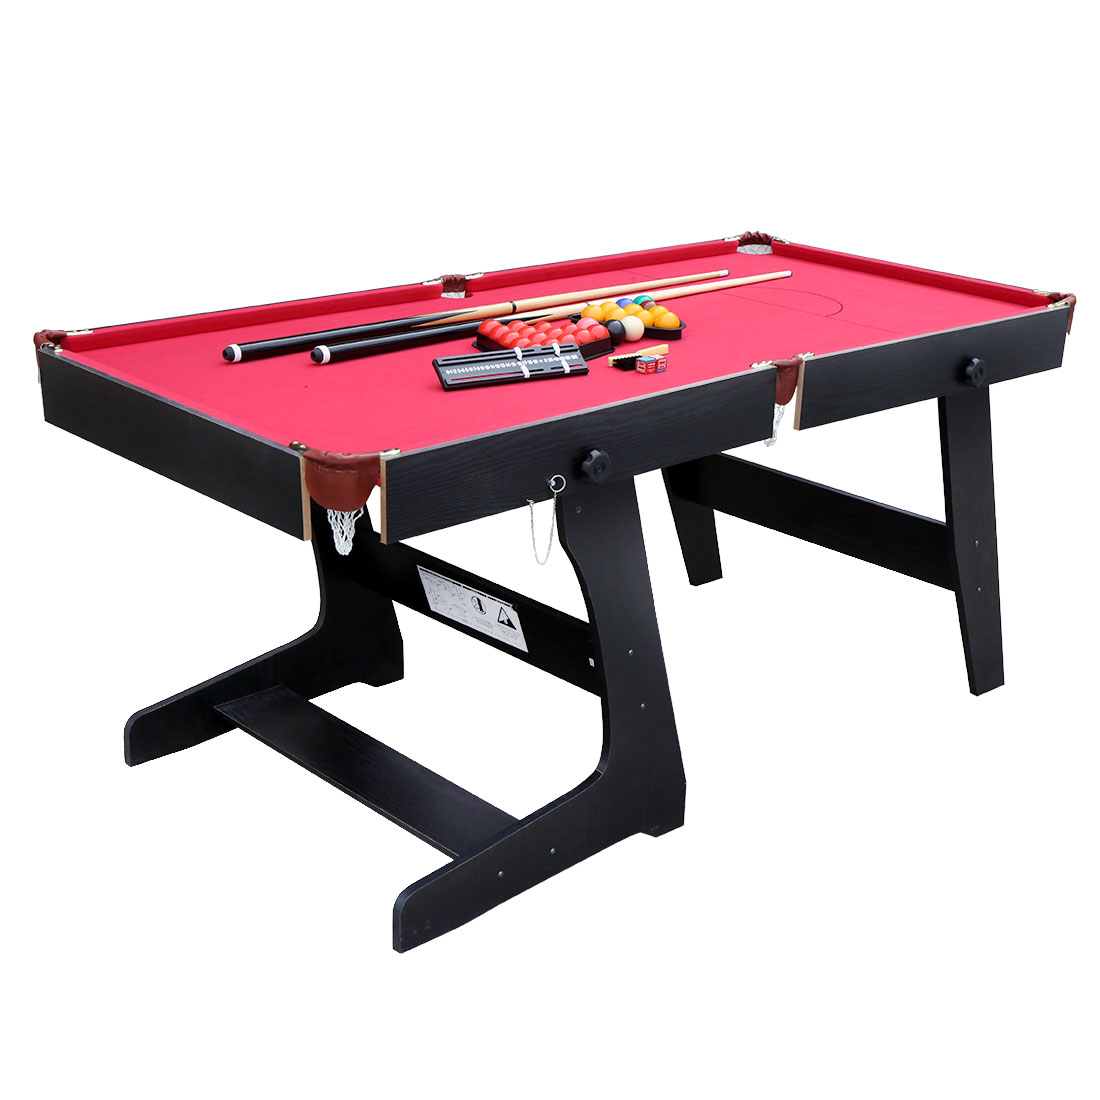 HLC 5.8 ft Snooker Billiards Table with Snooker and Pool ...